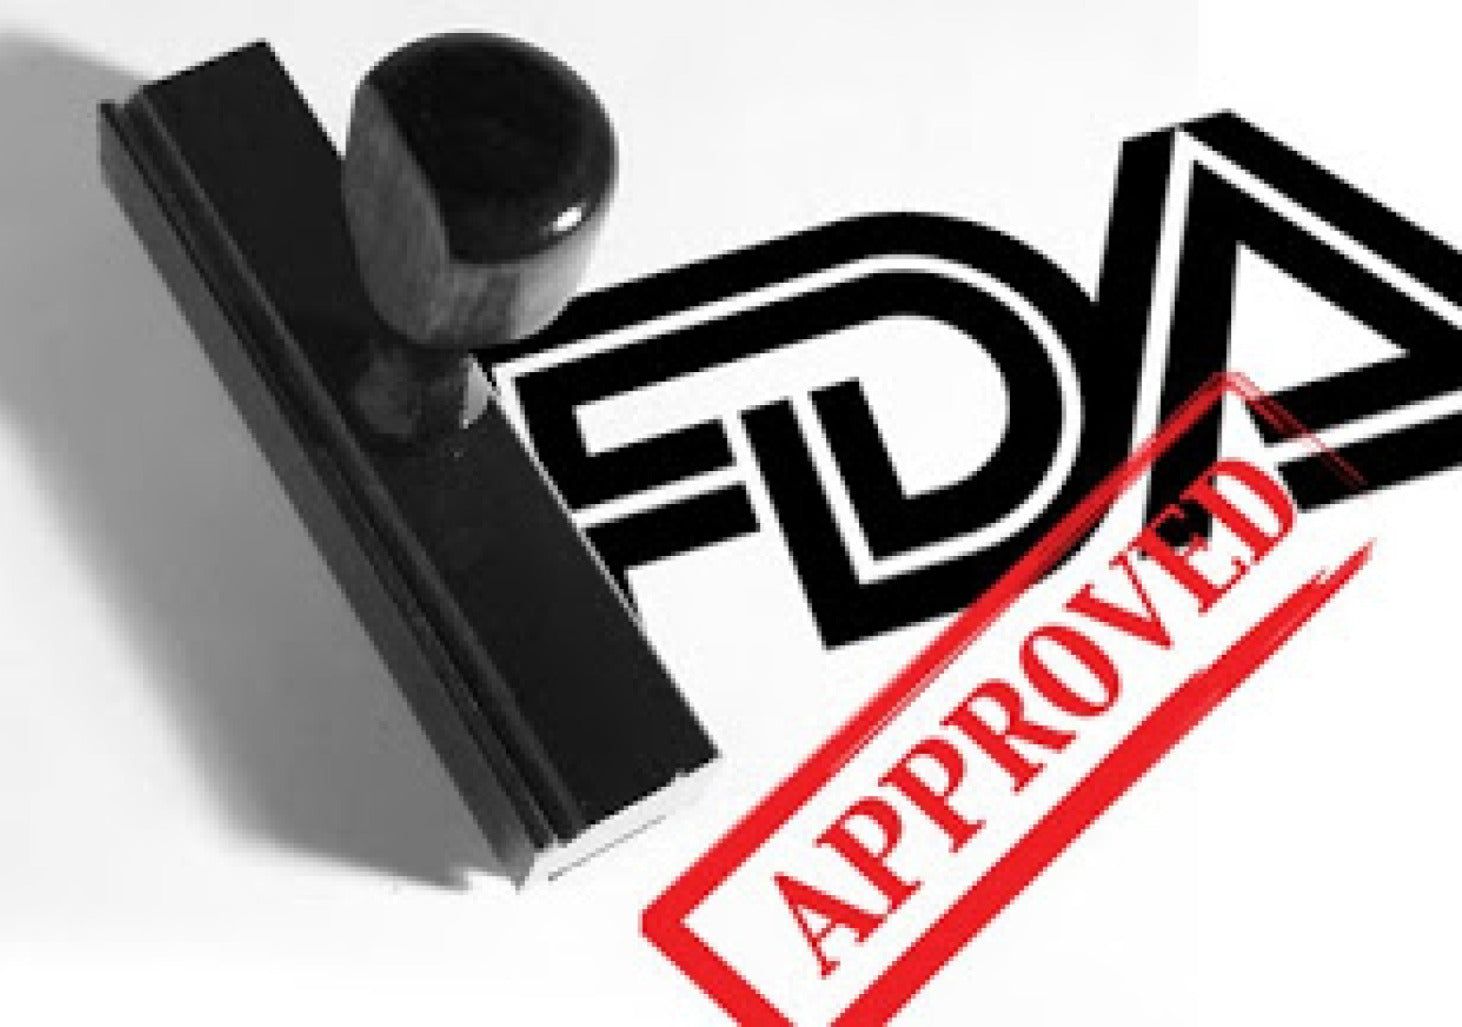 FDA Regulation of Marketing Claims and Testing